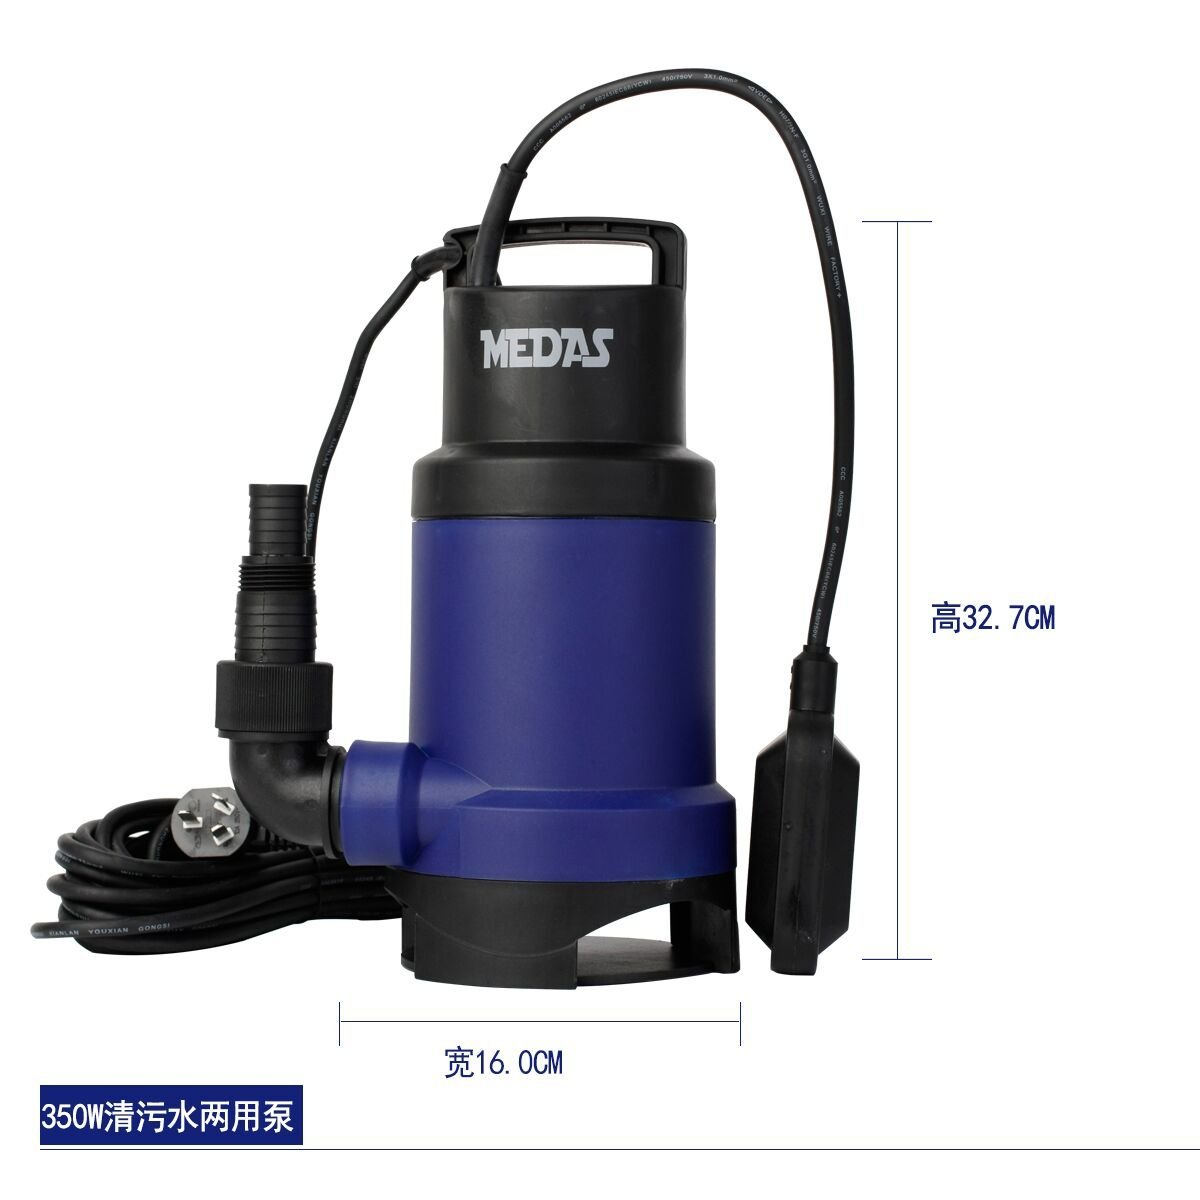 MEDAS 350W sewer, pump / float mobile intelligent pump double pump qdd7.5-6-wo.35